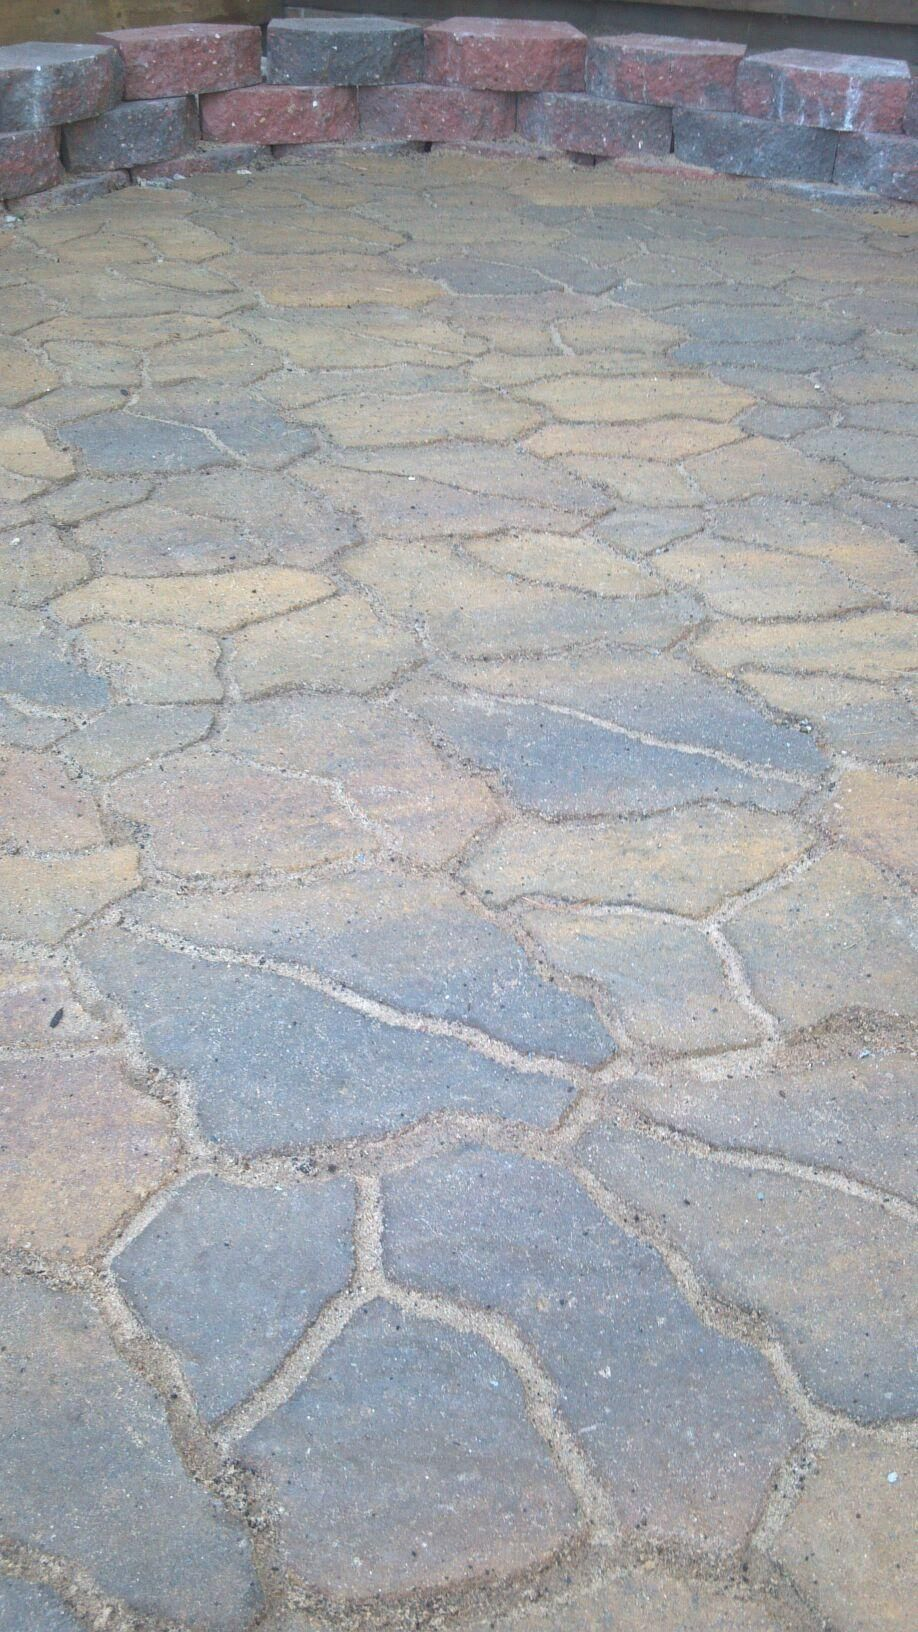 Siena Flagstone Pavers From Menards. Very Easy To Install. Be Sure To Use  Locking